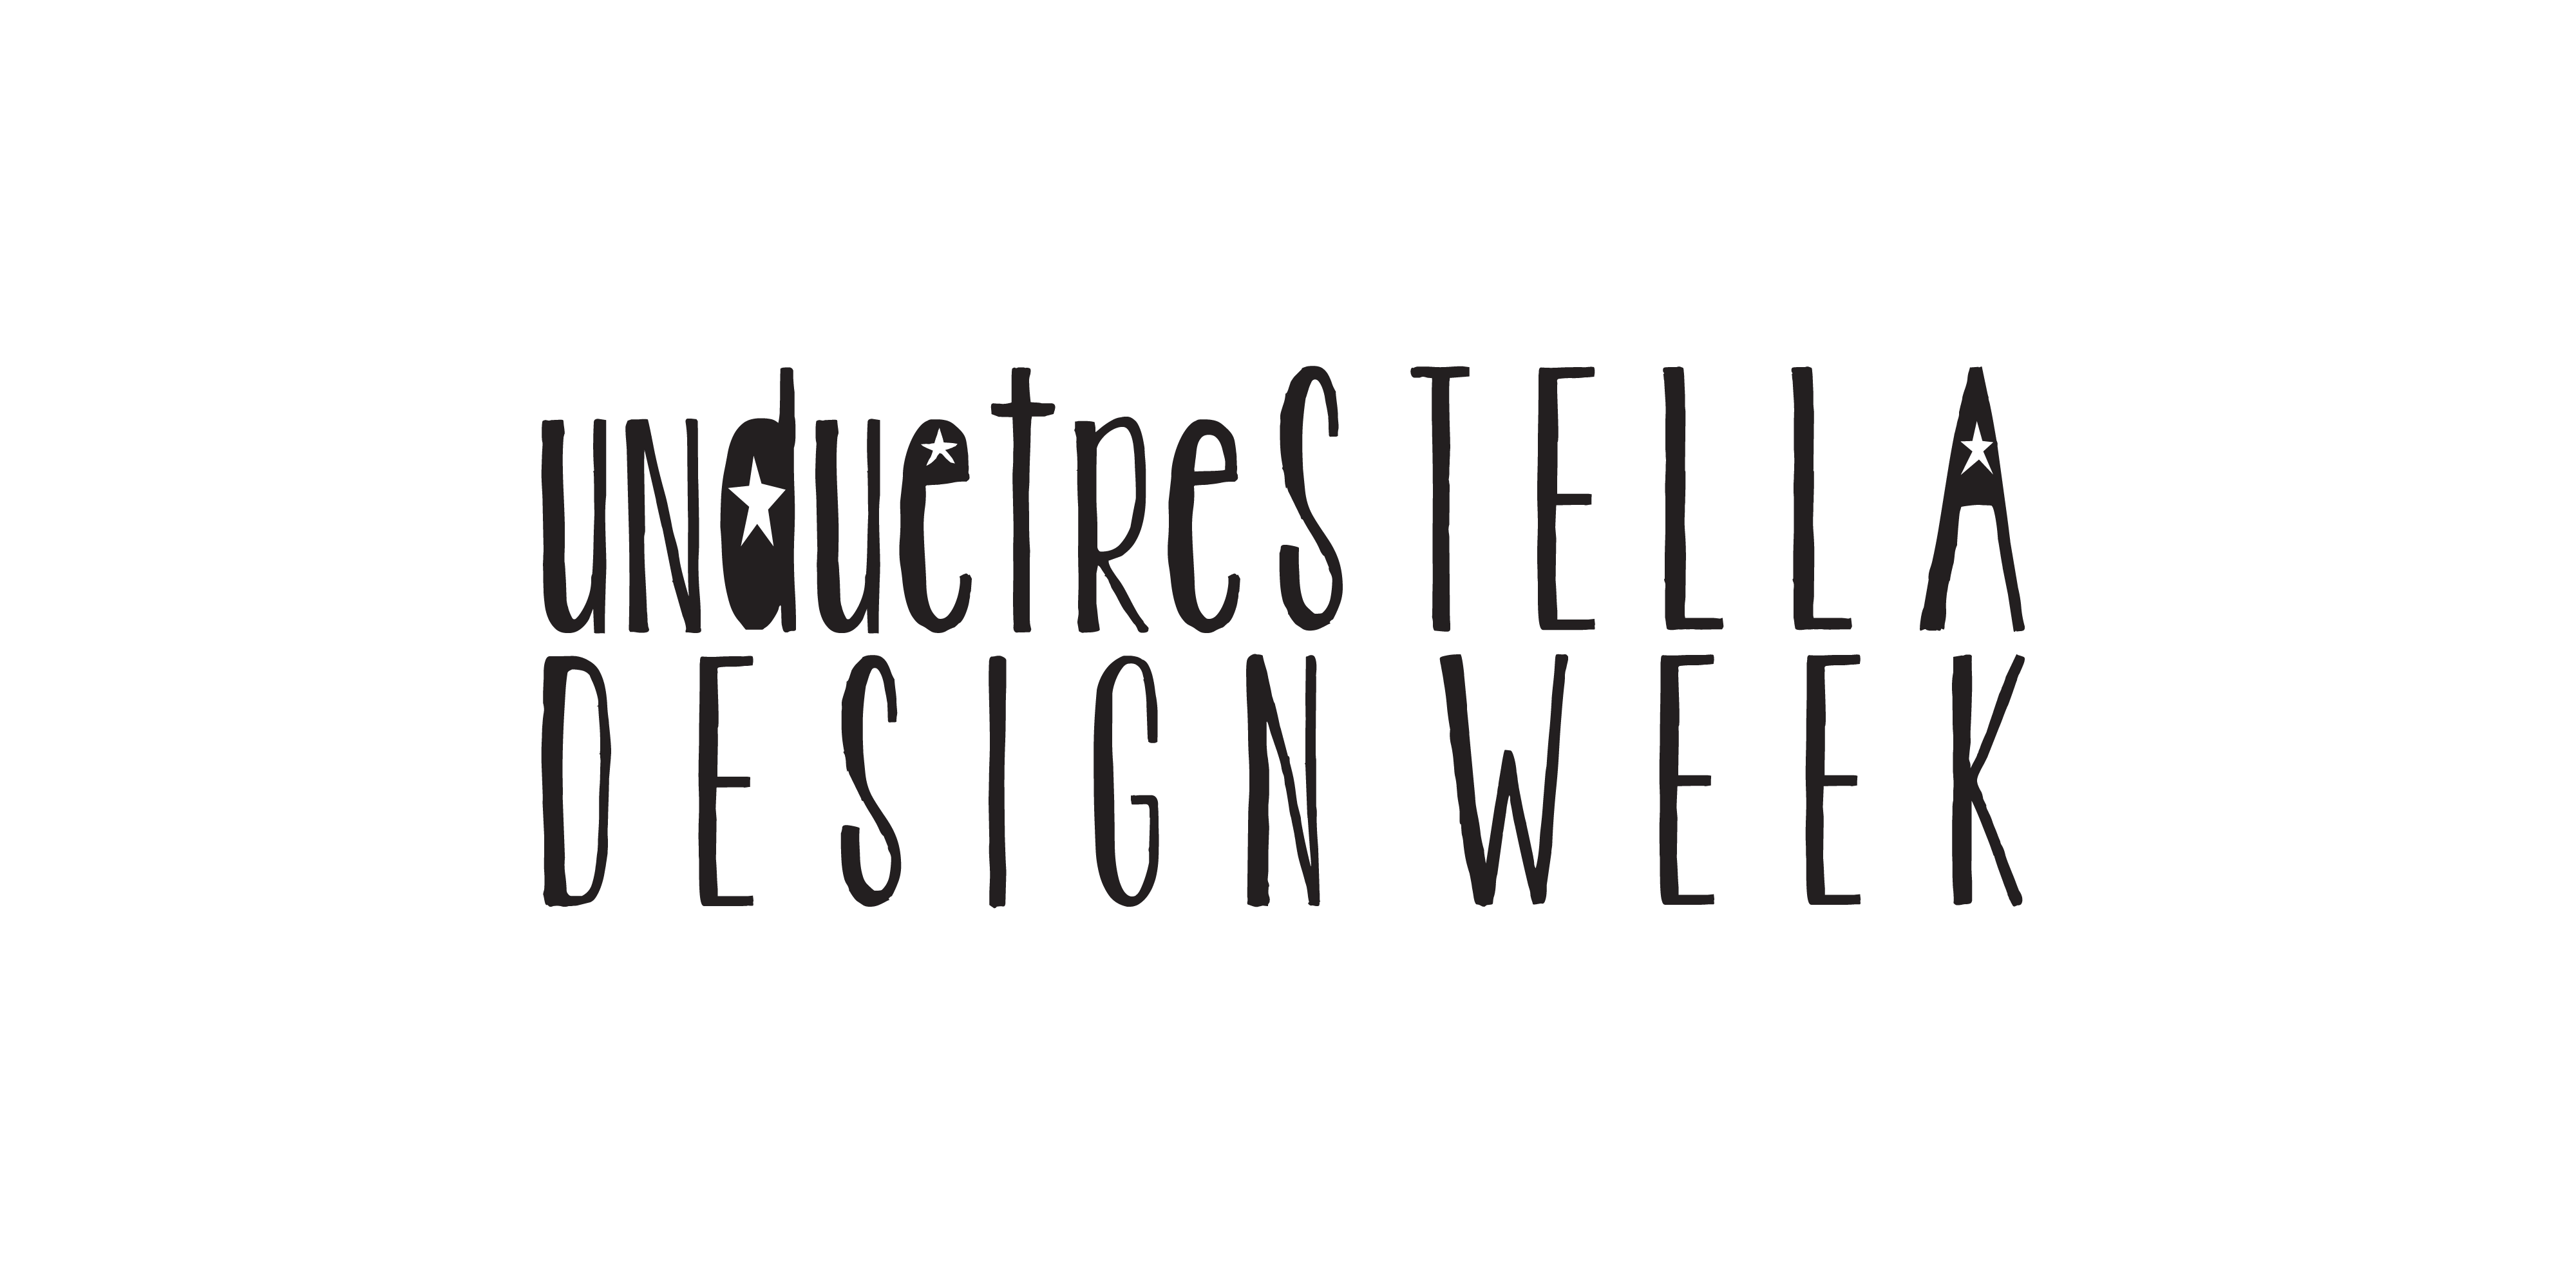 Unduetrestella Design Week